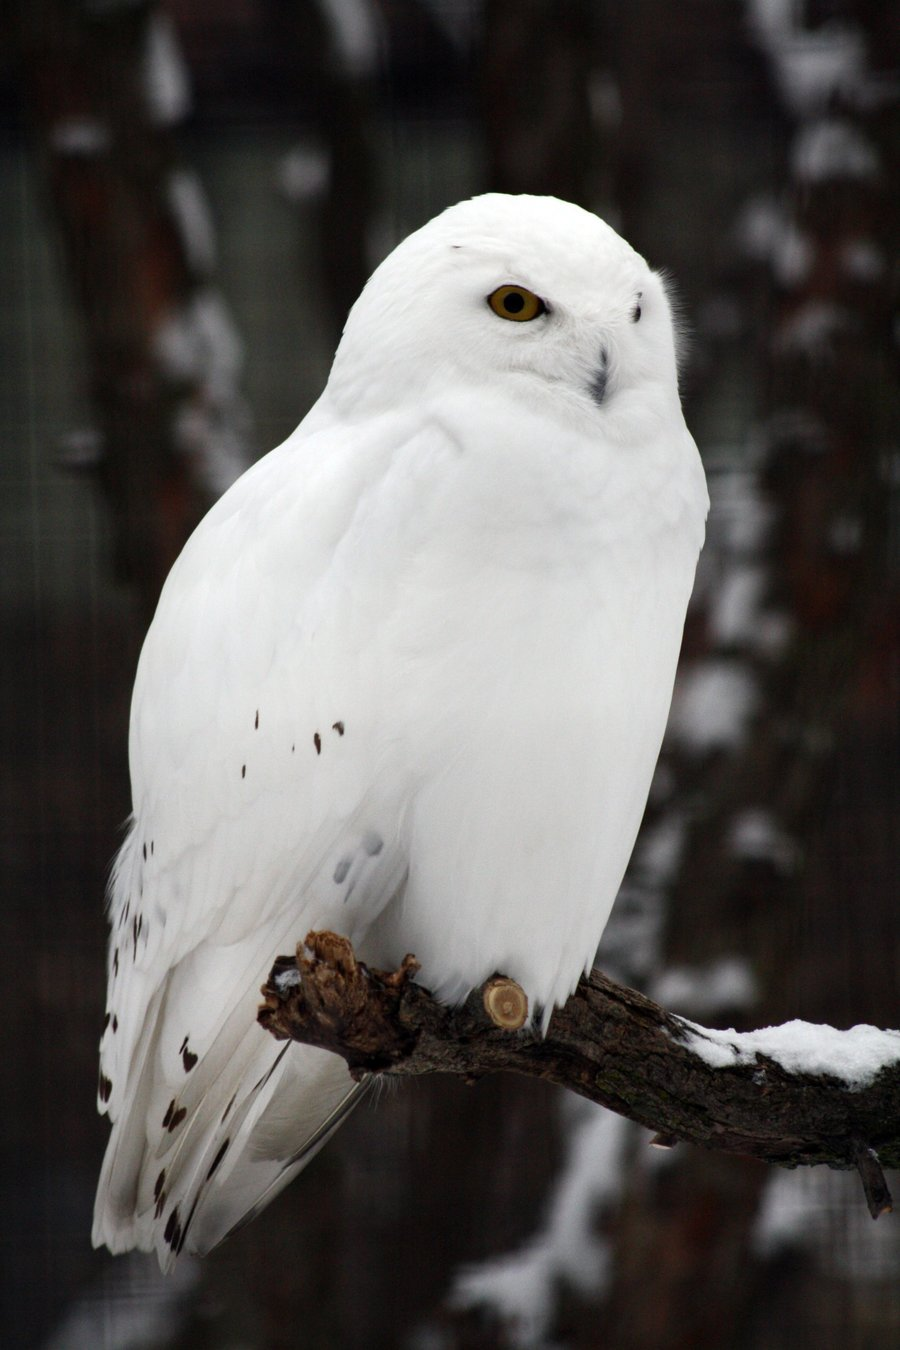 Snowy male owl on a branch